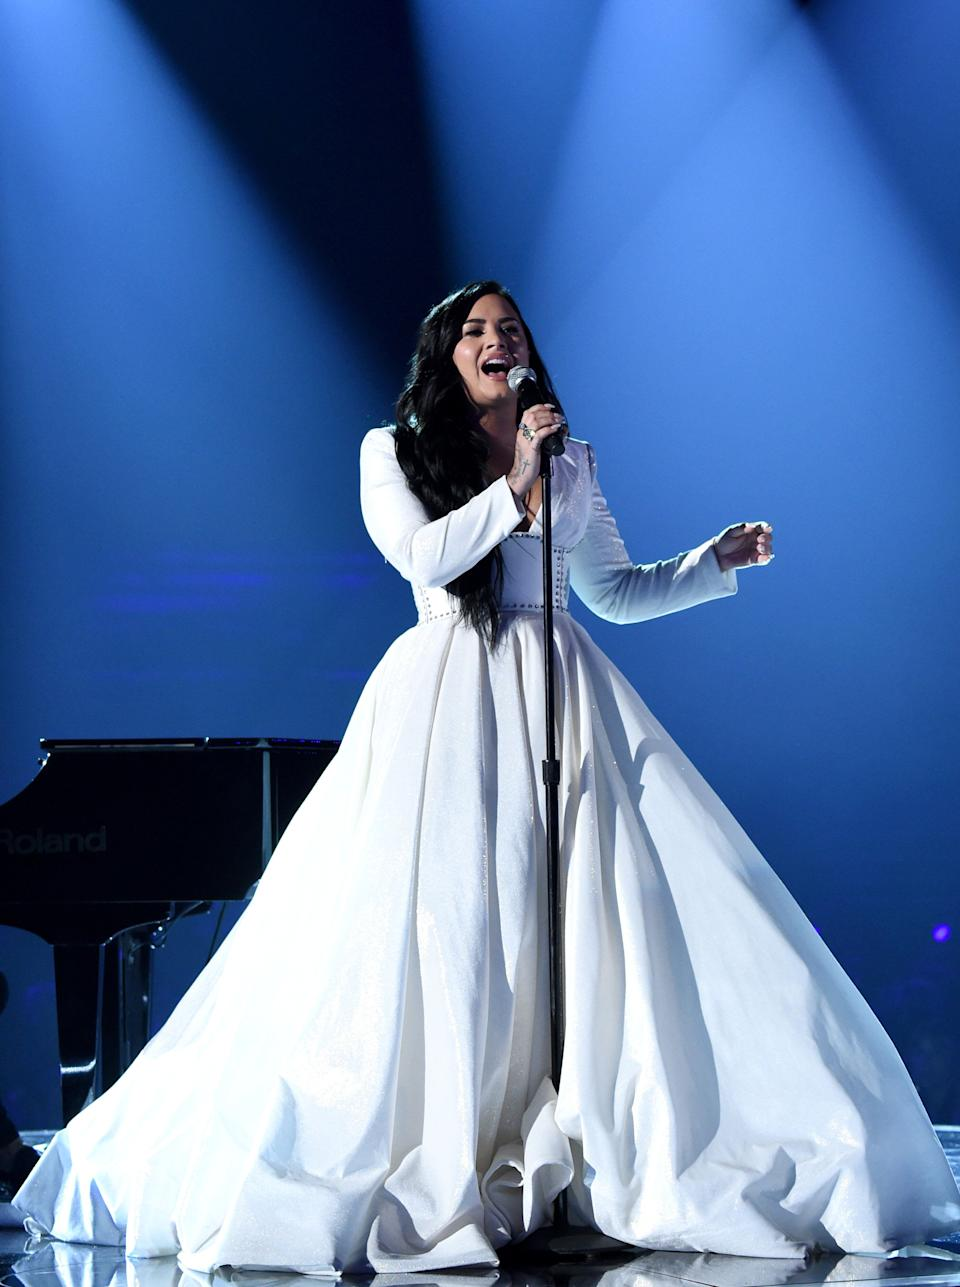 Demi on stage at the Grammys (Photo: John Shearer via Getty Images)